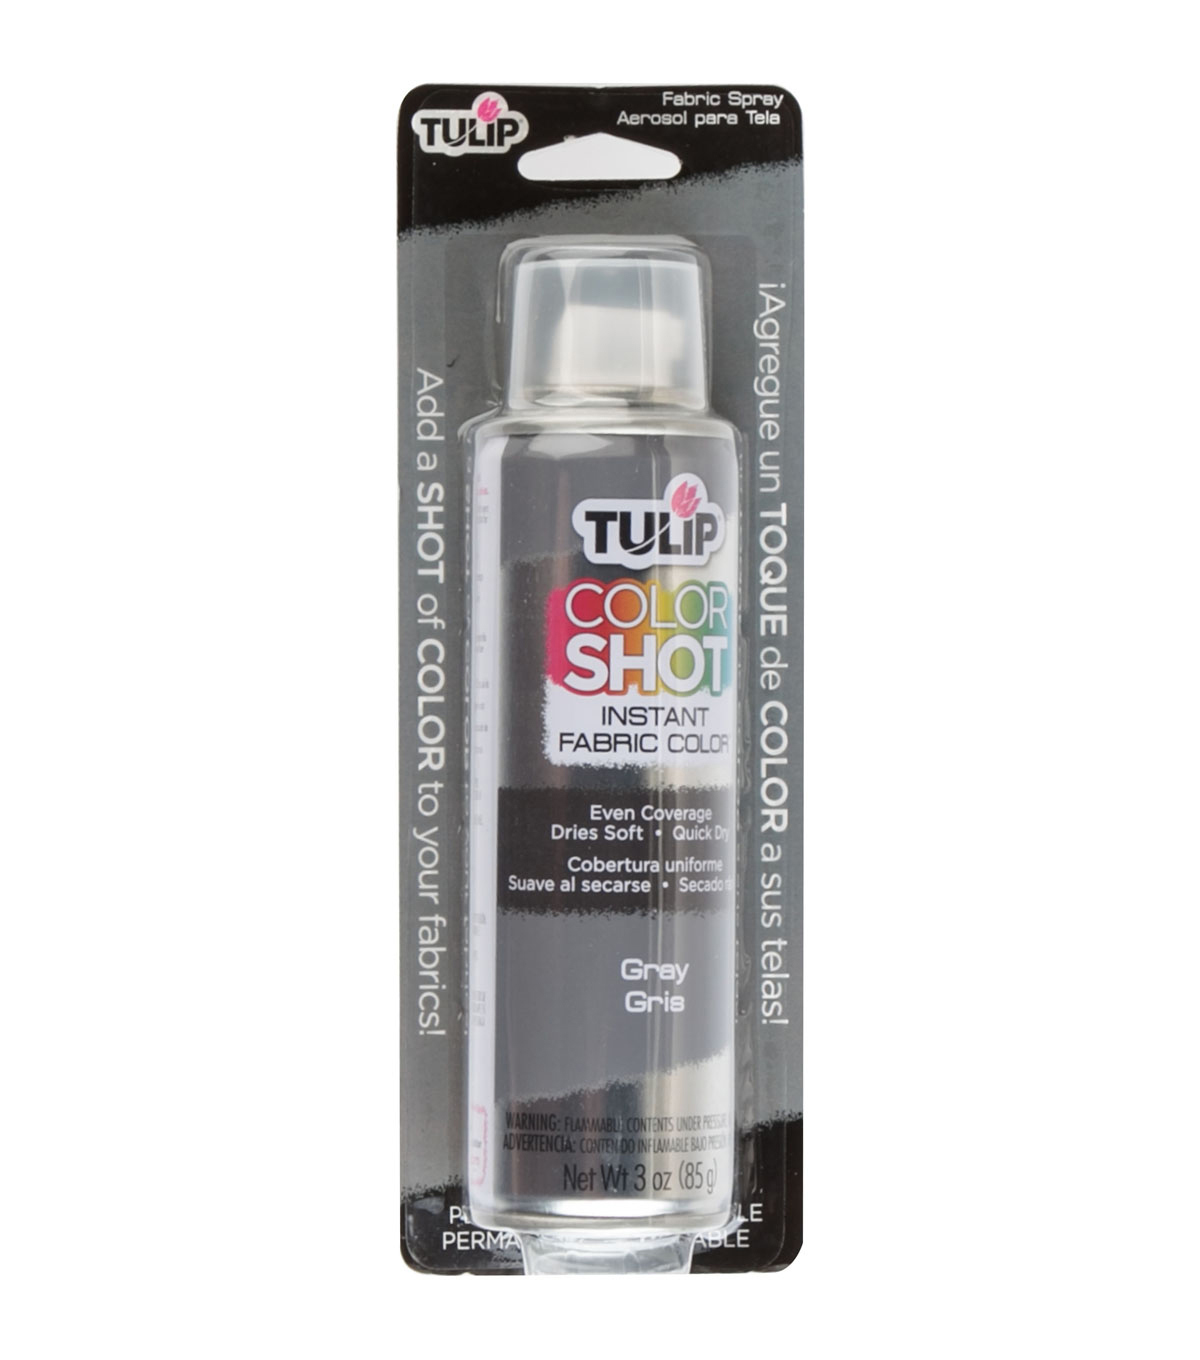 Tulip ColorShot Instant Fabric Color Spray 3oz, Gray